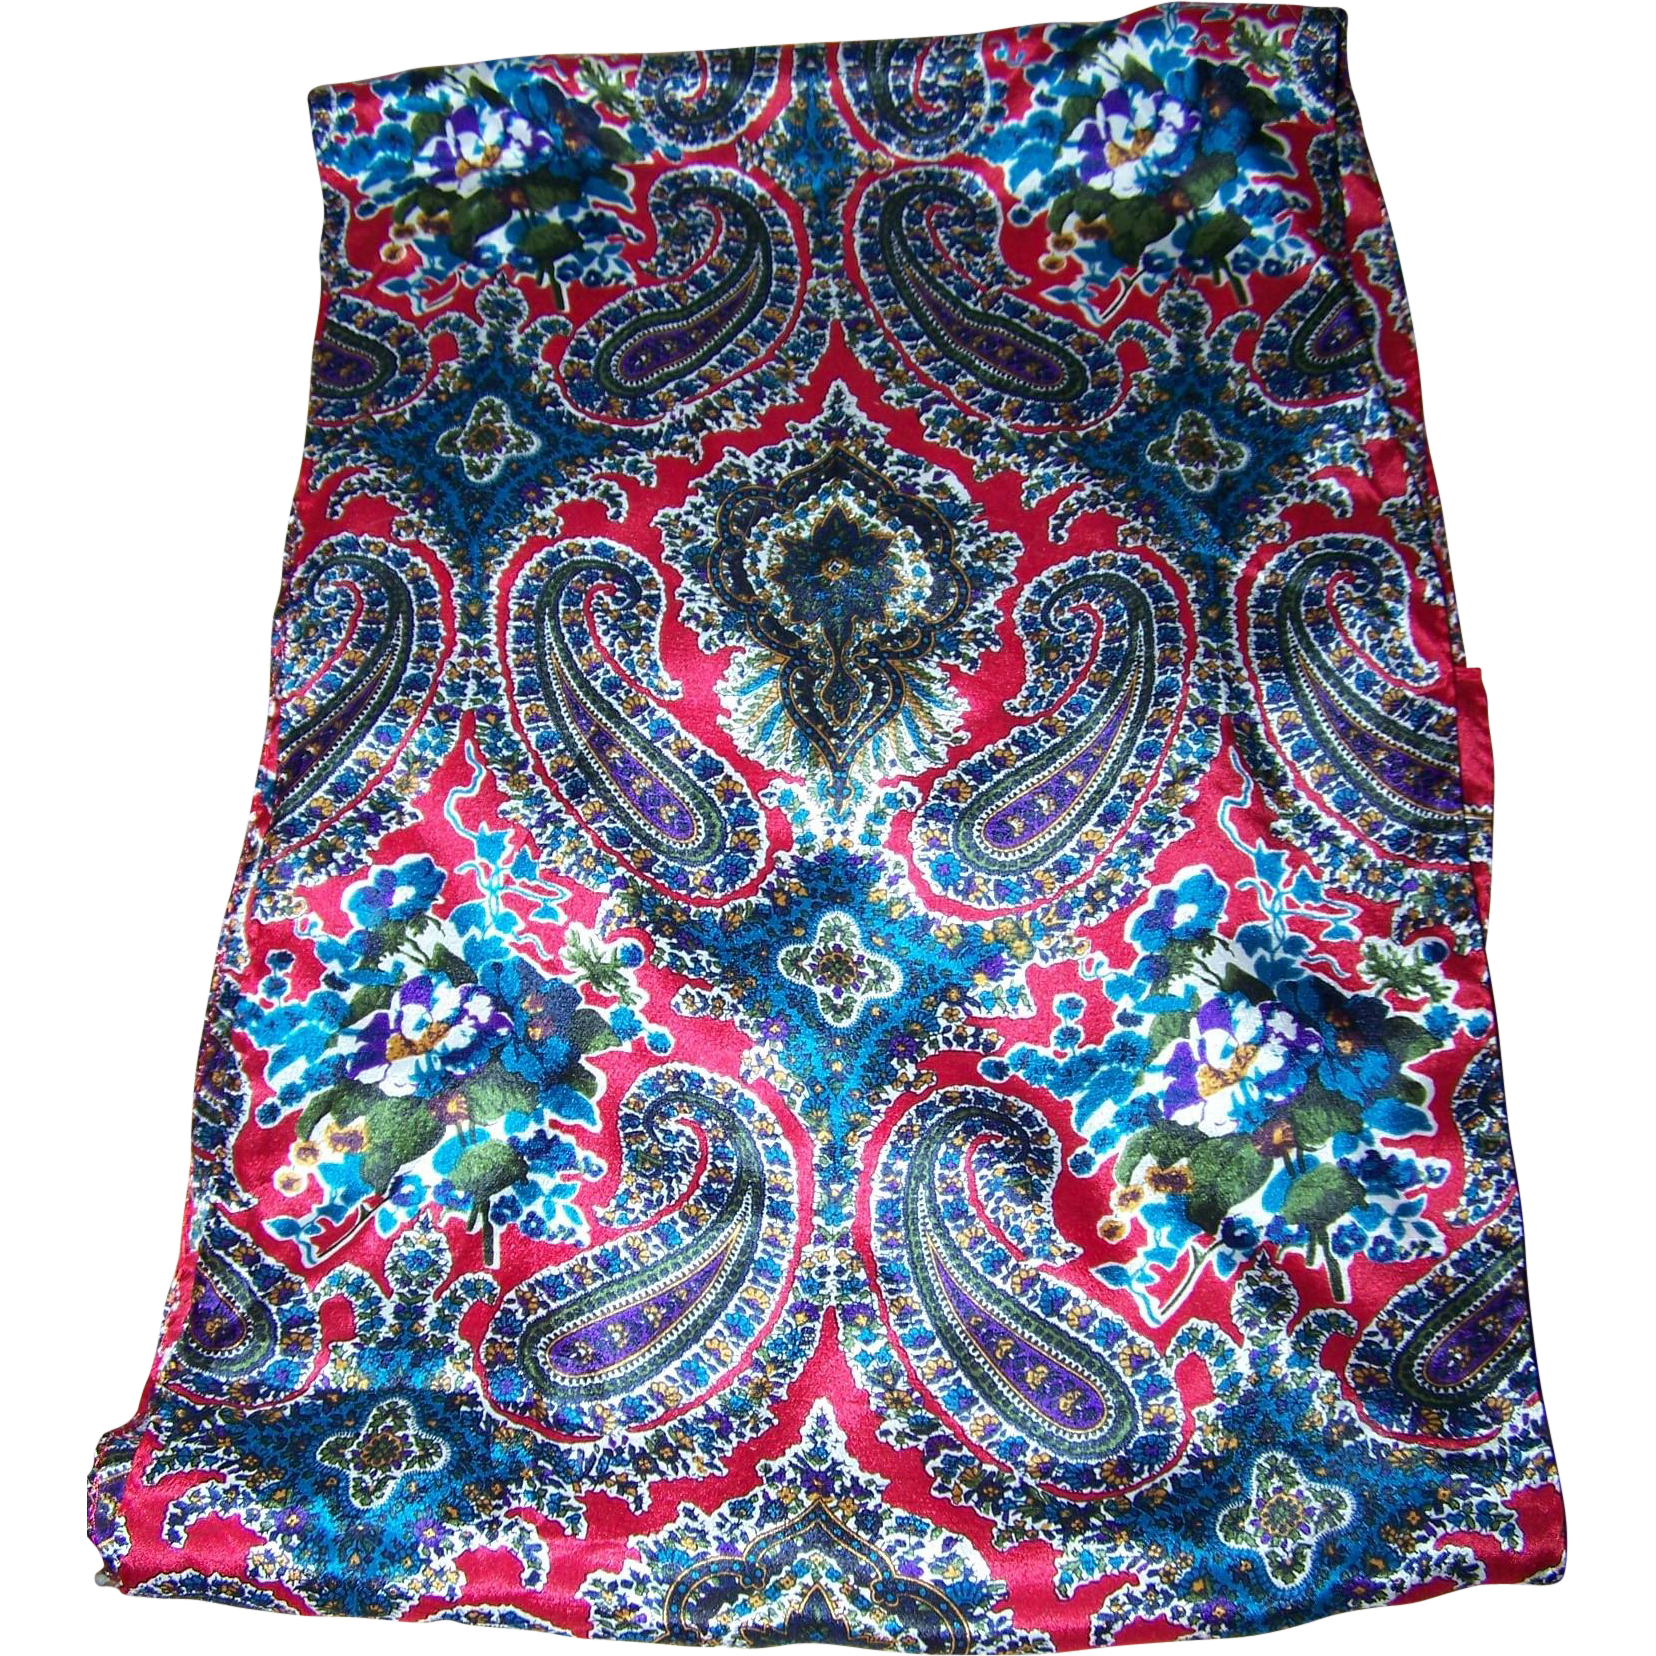 Colorful Designer Signed Long Rectangular CLUB Echo 7 Scarf Paisley Flower Pattern